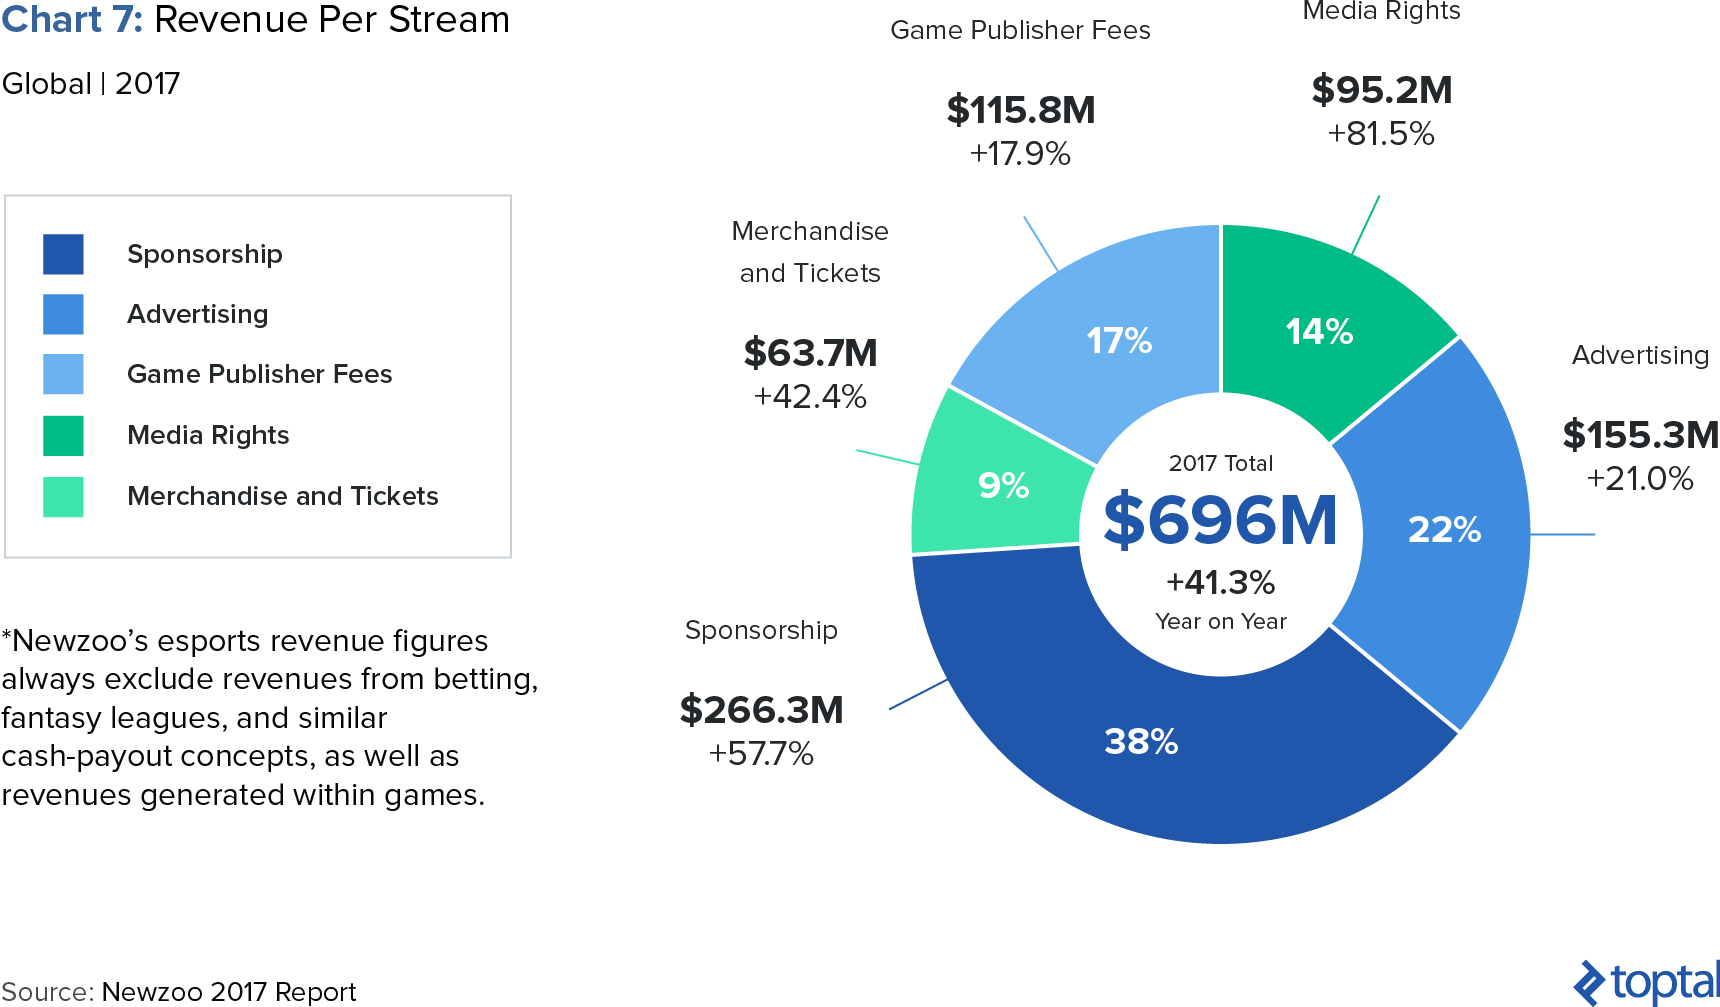 Chart 7: Revenue Per Stream